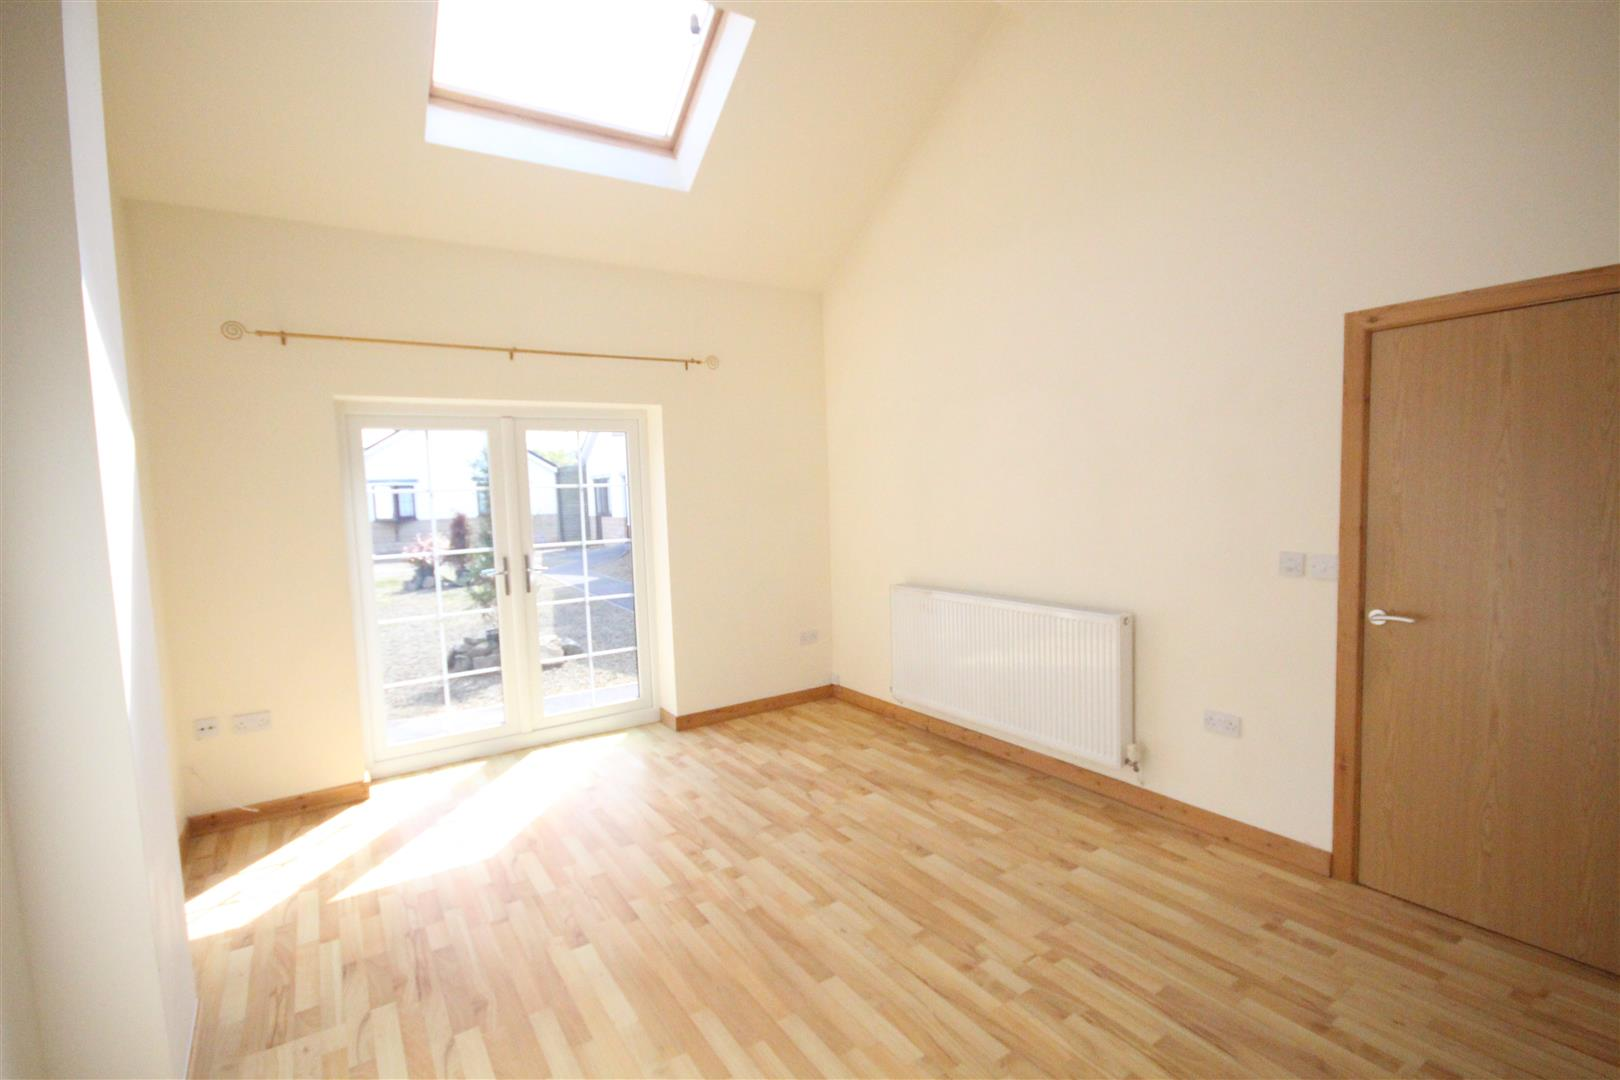 2 bedroom bungalow For Sale in Colne - IMG_3341.jpg